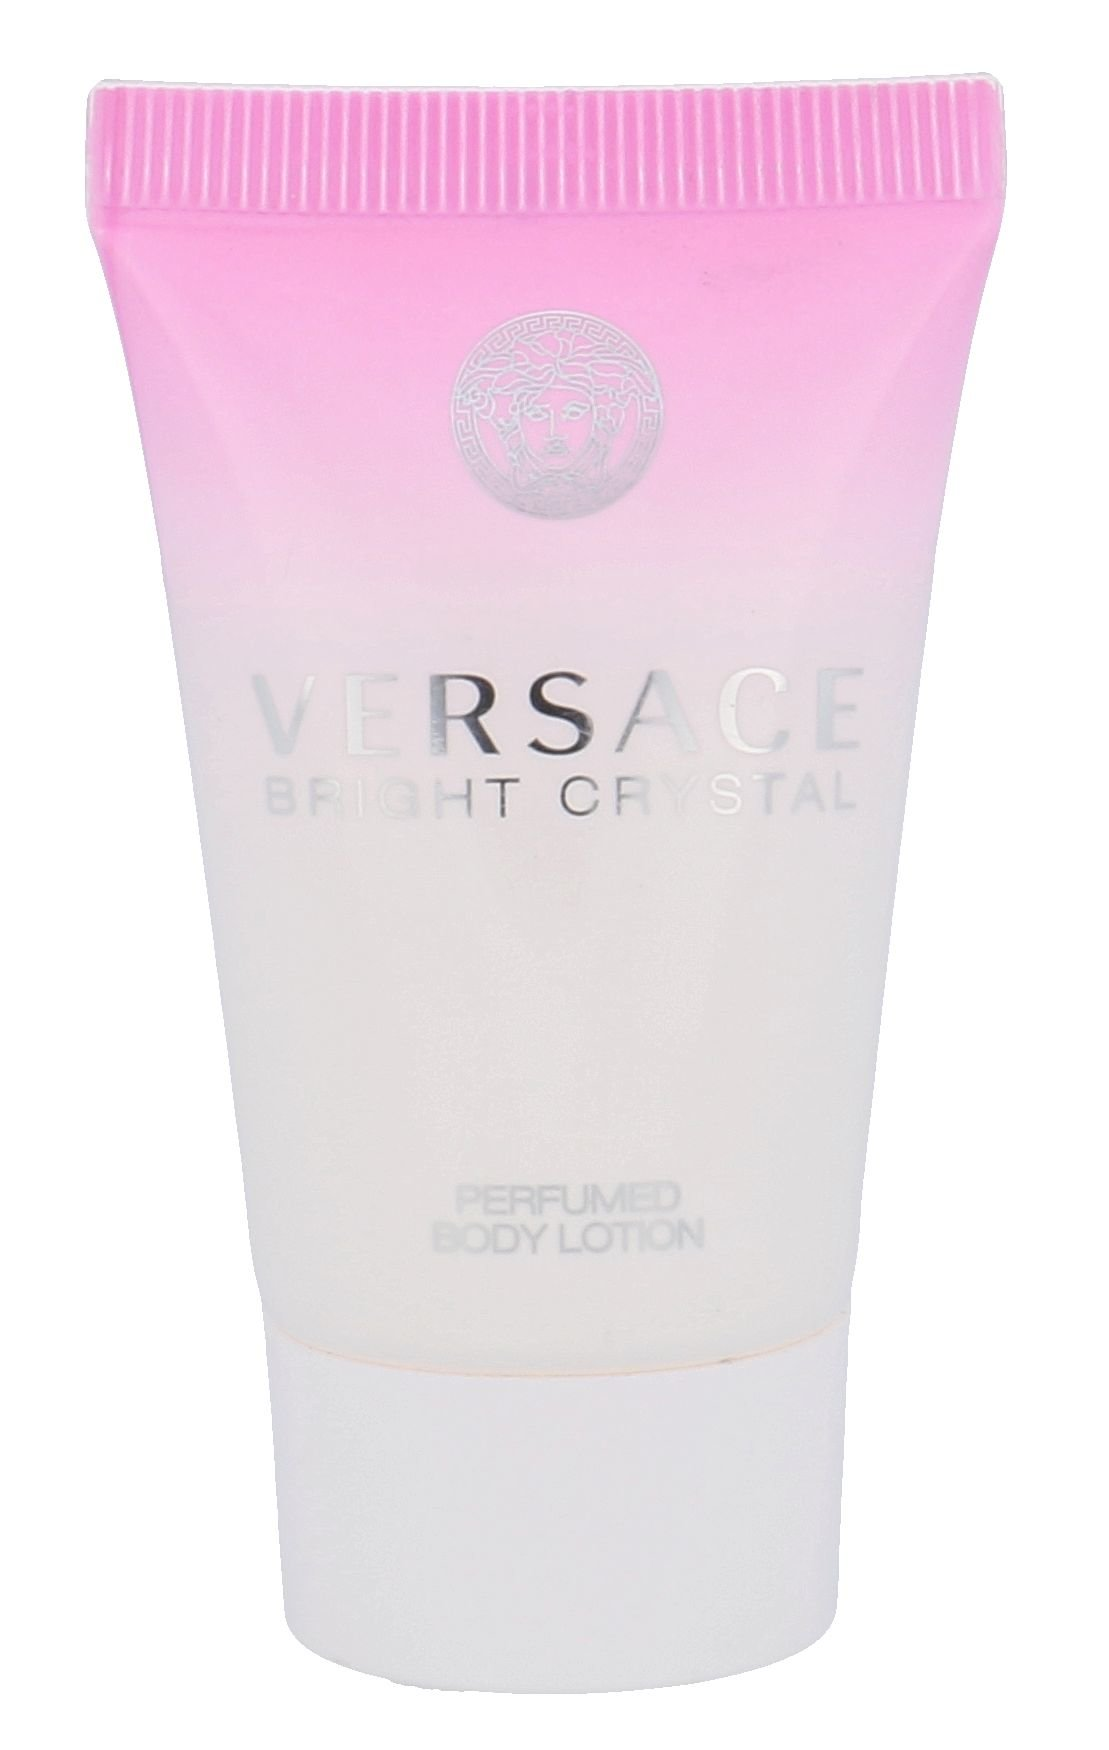 Versace Bright Crystal Body lotion 25ml